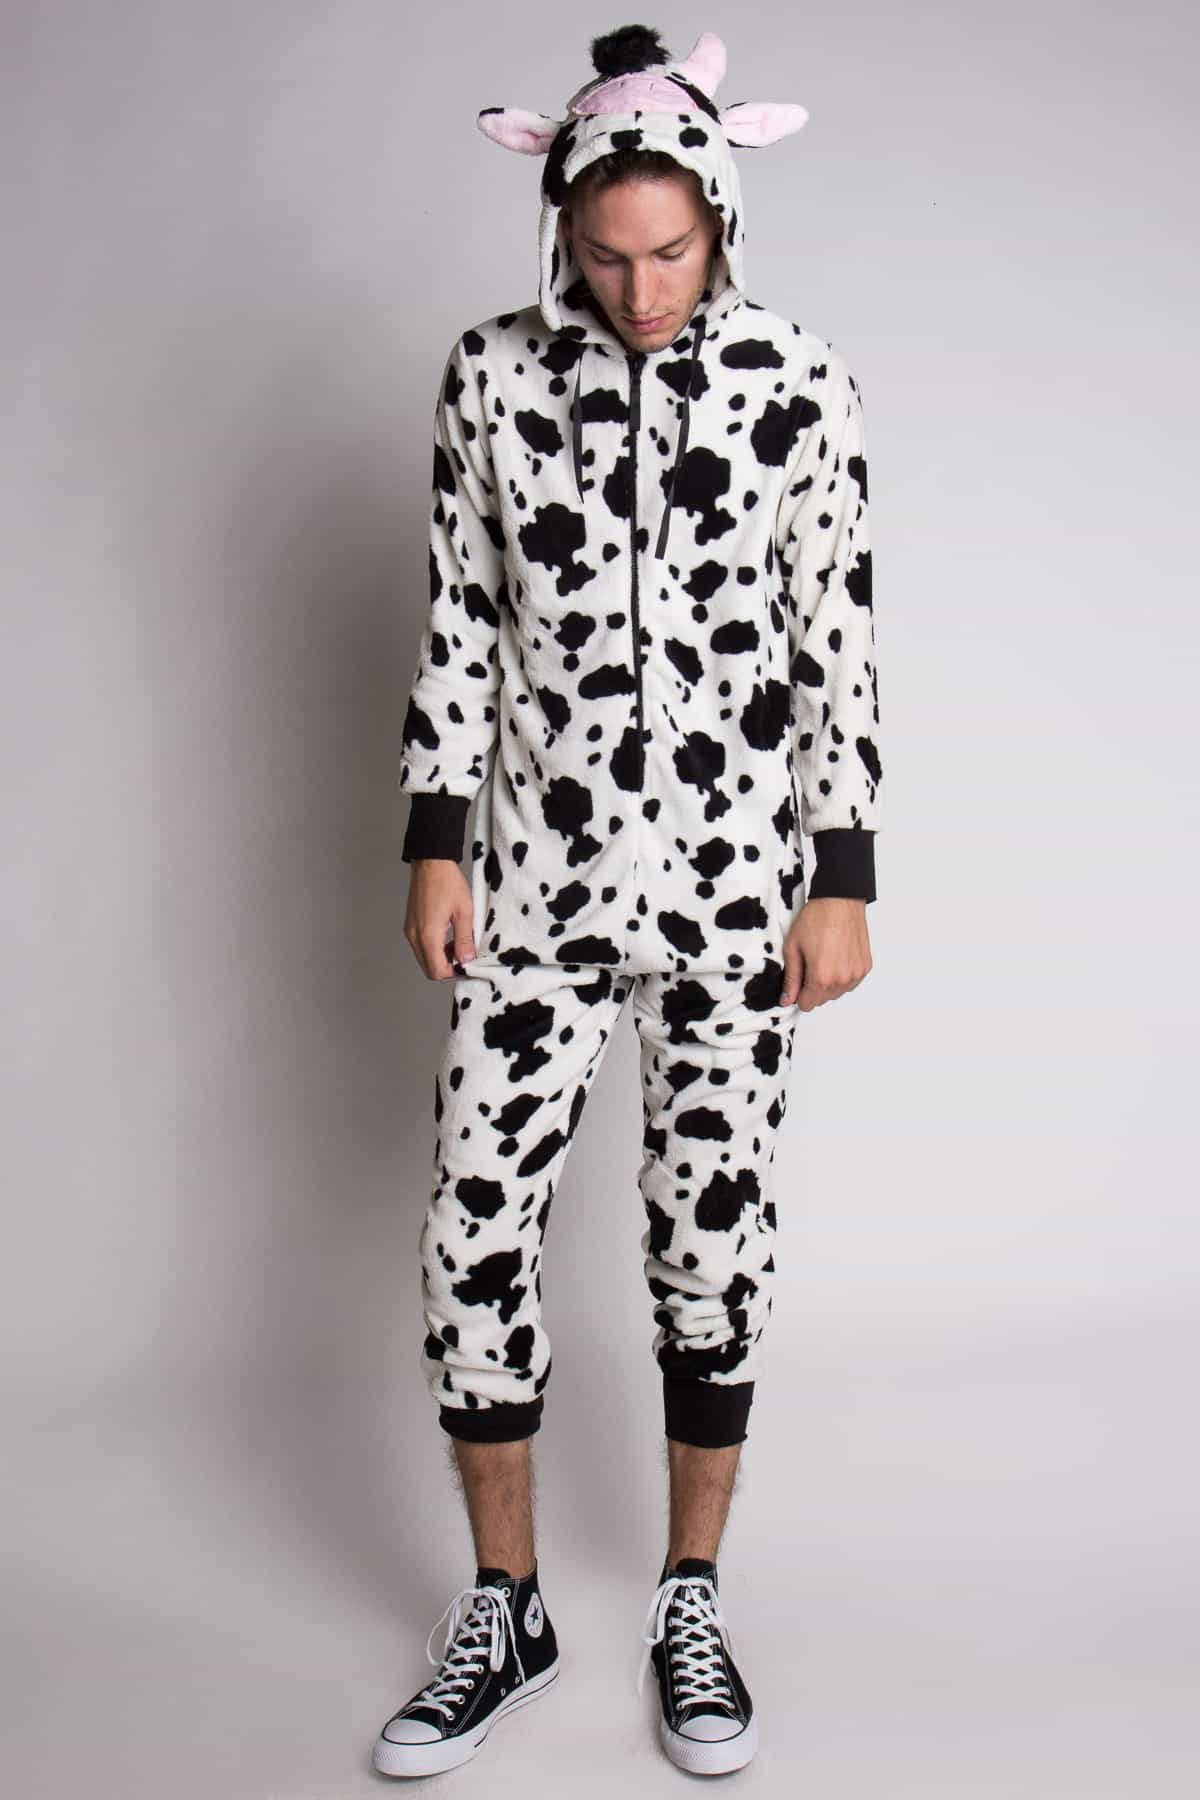 a63b9ecb3e63 You re viewing  Cow Onesie Pajamas  29.99